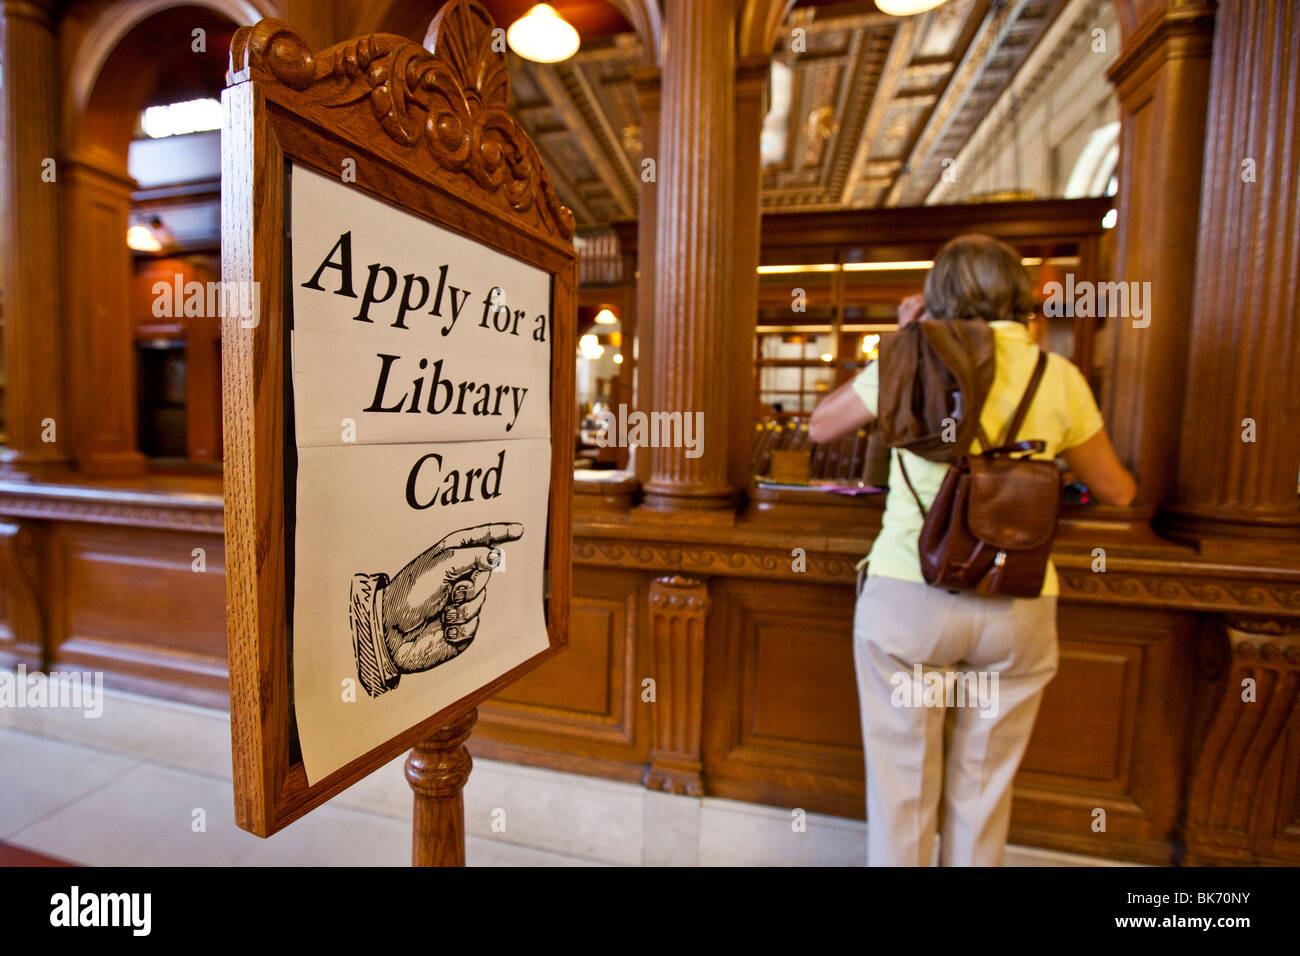 Woman applying for a Library card at the Main Branch of the New York Public Library, Manhattan, NYC - Stock Image